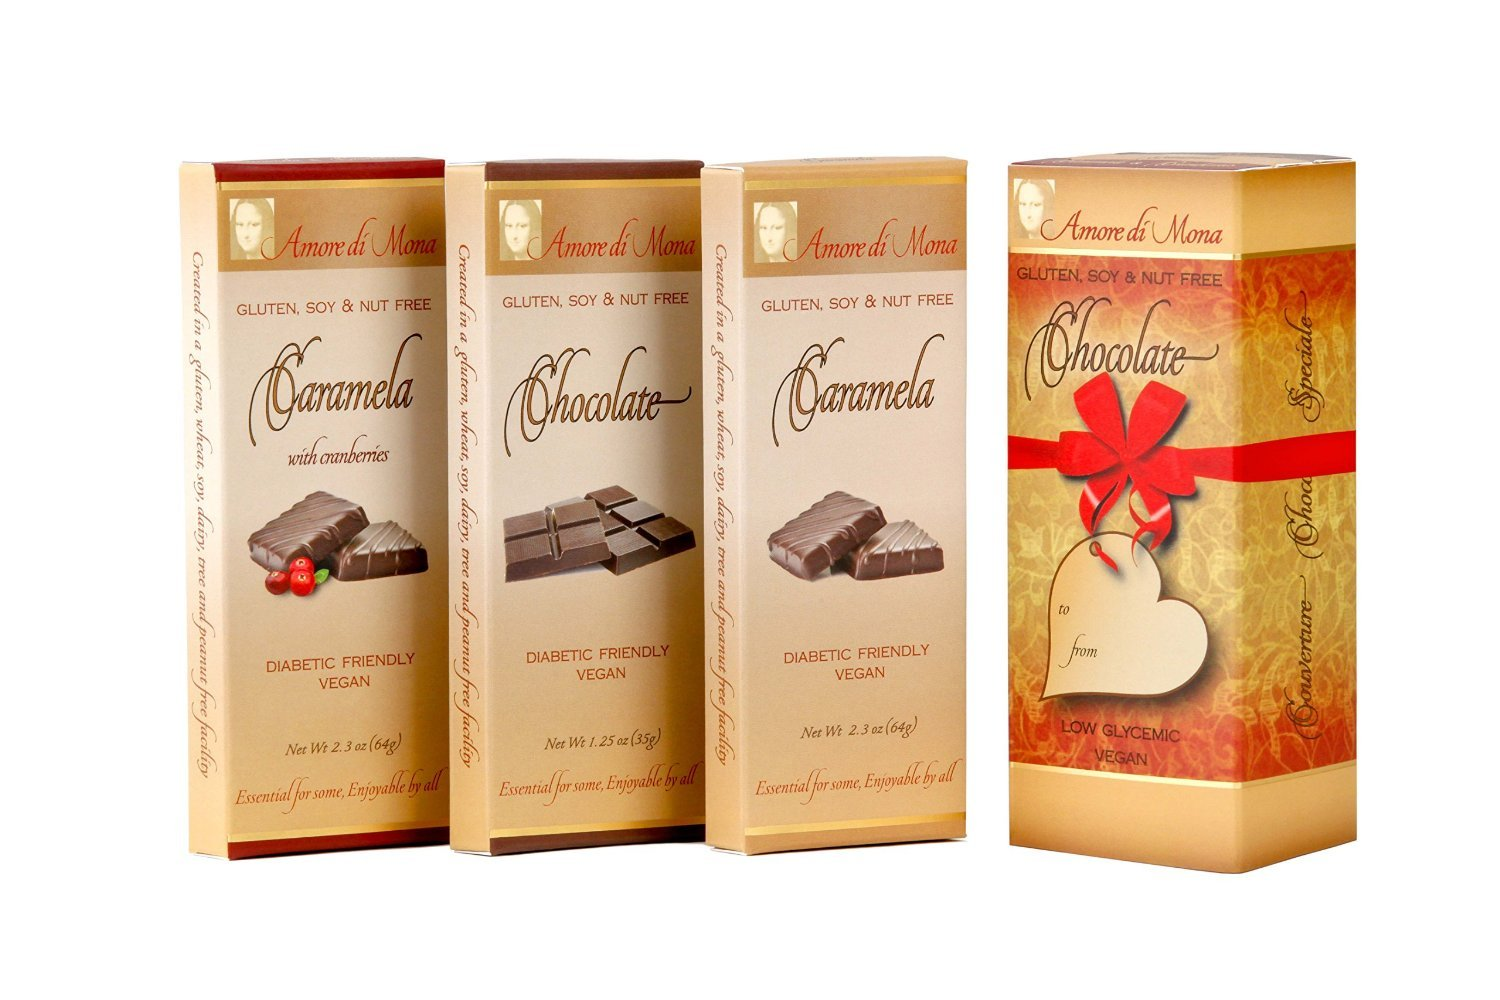 Amore Collection-Amore di Mona Luxury Chocolate Box. No Gluten Peanuts,Tree Nuts, Milk, Sesame or Soy. Vegan, All-Natural, Non-GMO, Low Glycemic by Amore di Mona Couverture Chocolat Speciale